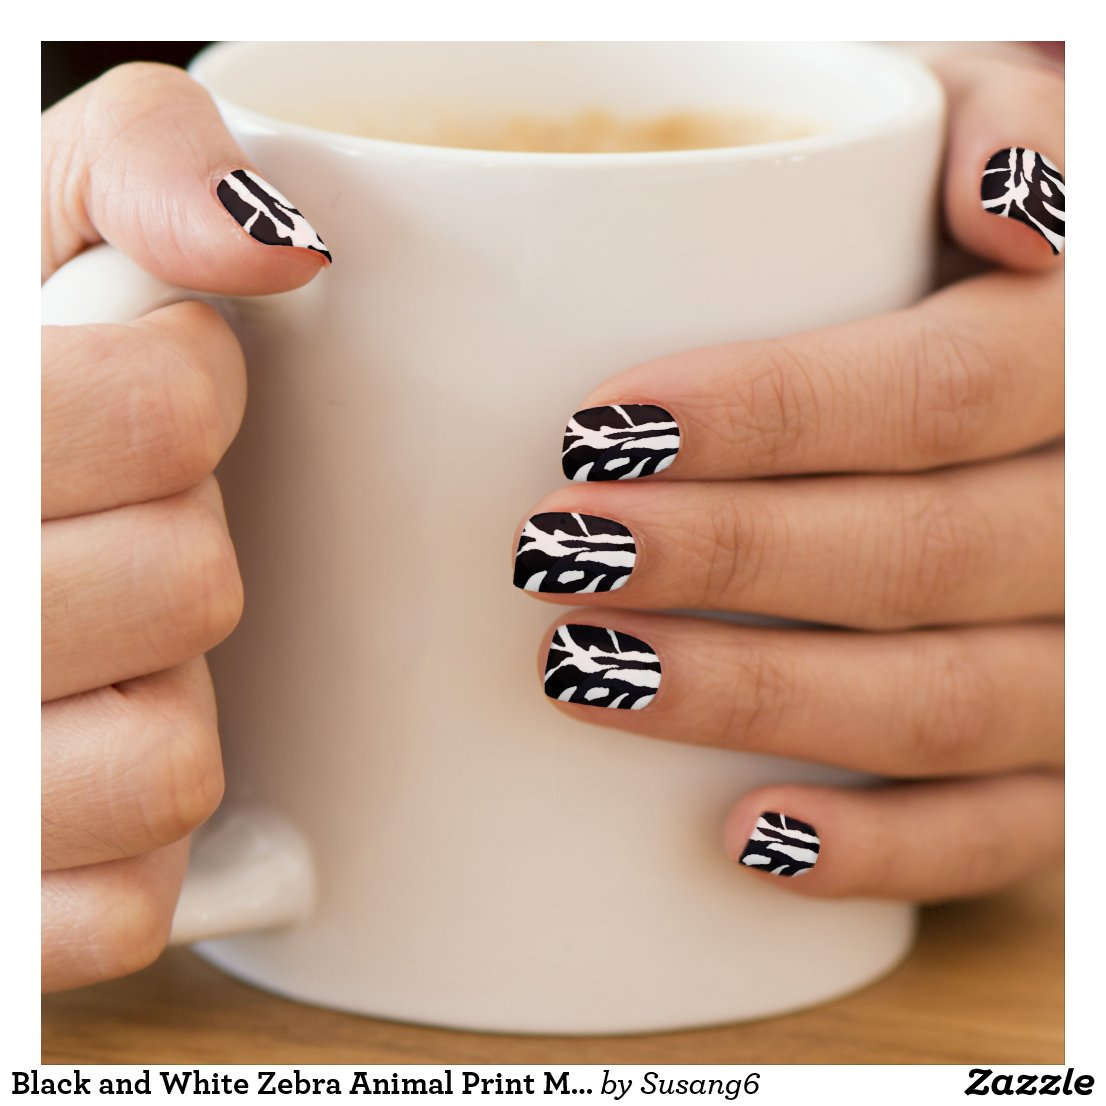 Black and White Zebra Animal Print Minx Nail Art